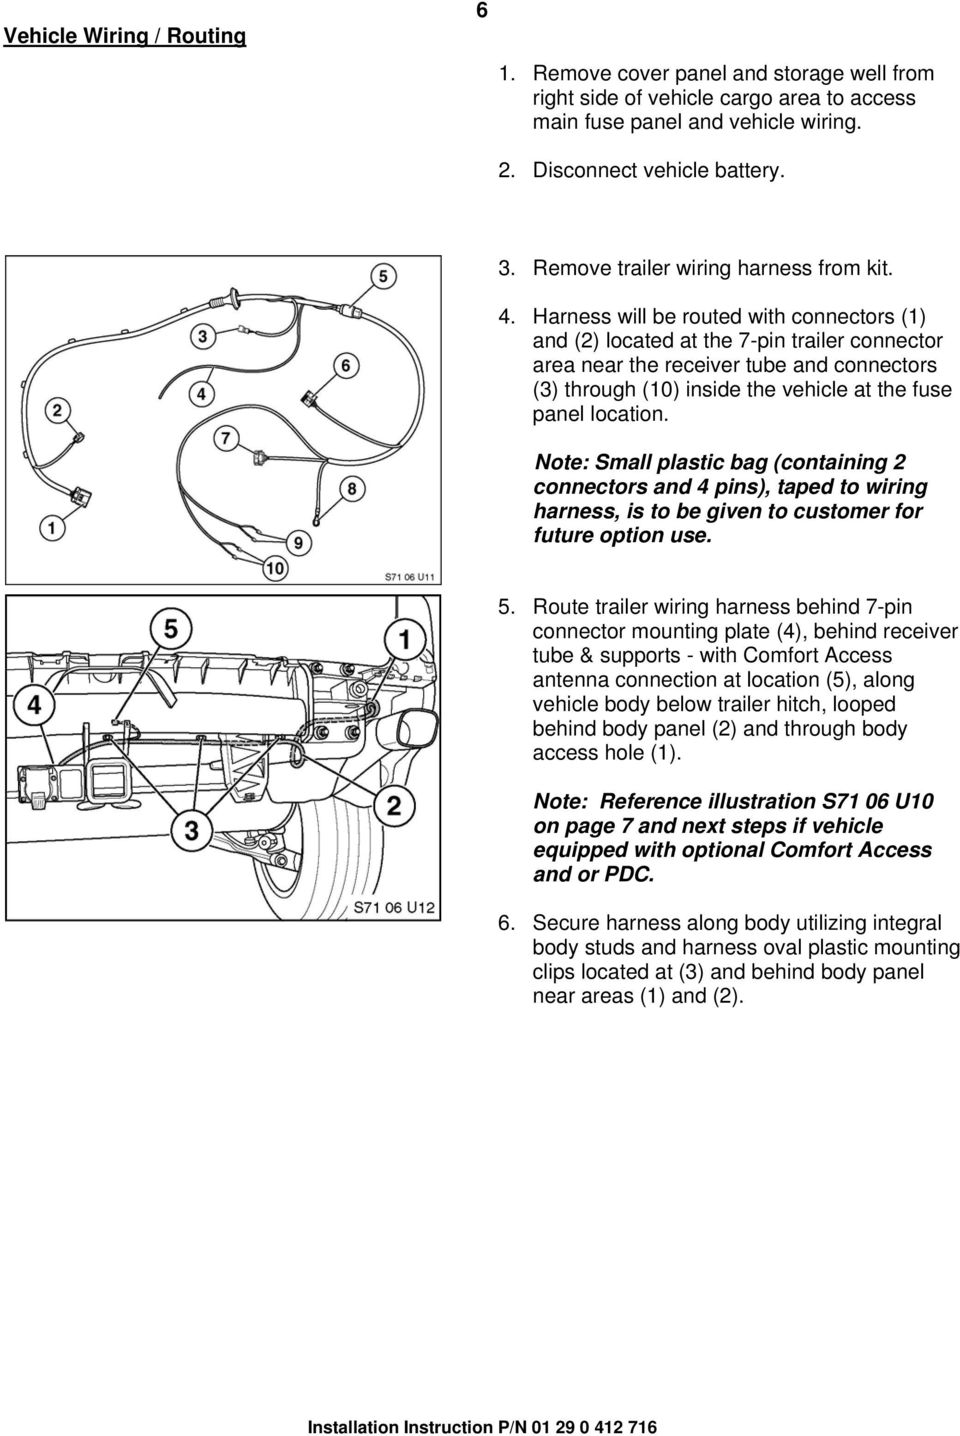 Installation Instructions Pdf 7 Pin Rv Wiring Harness Will Be Routed With Connectors 1 And 2 Located At The